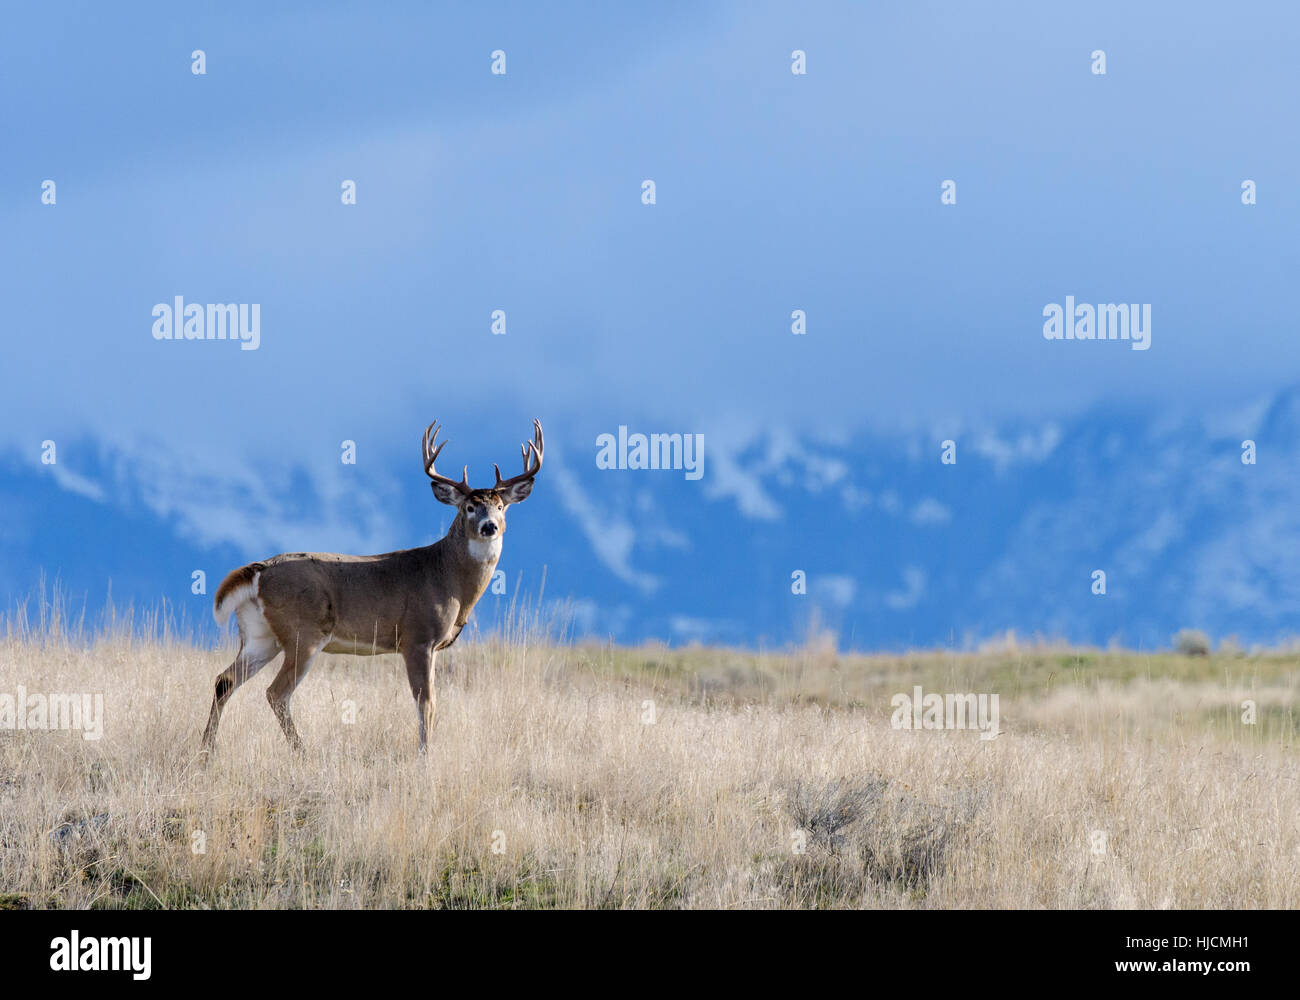 White-tail Buck (Odocoileus virginianus) in front of cloud covered mountains, Western North America - Stock Image